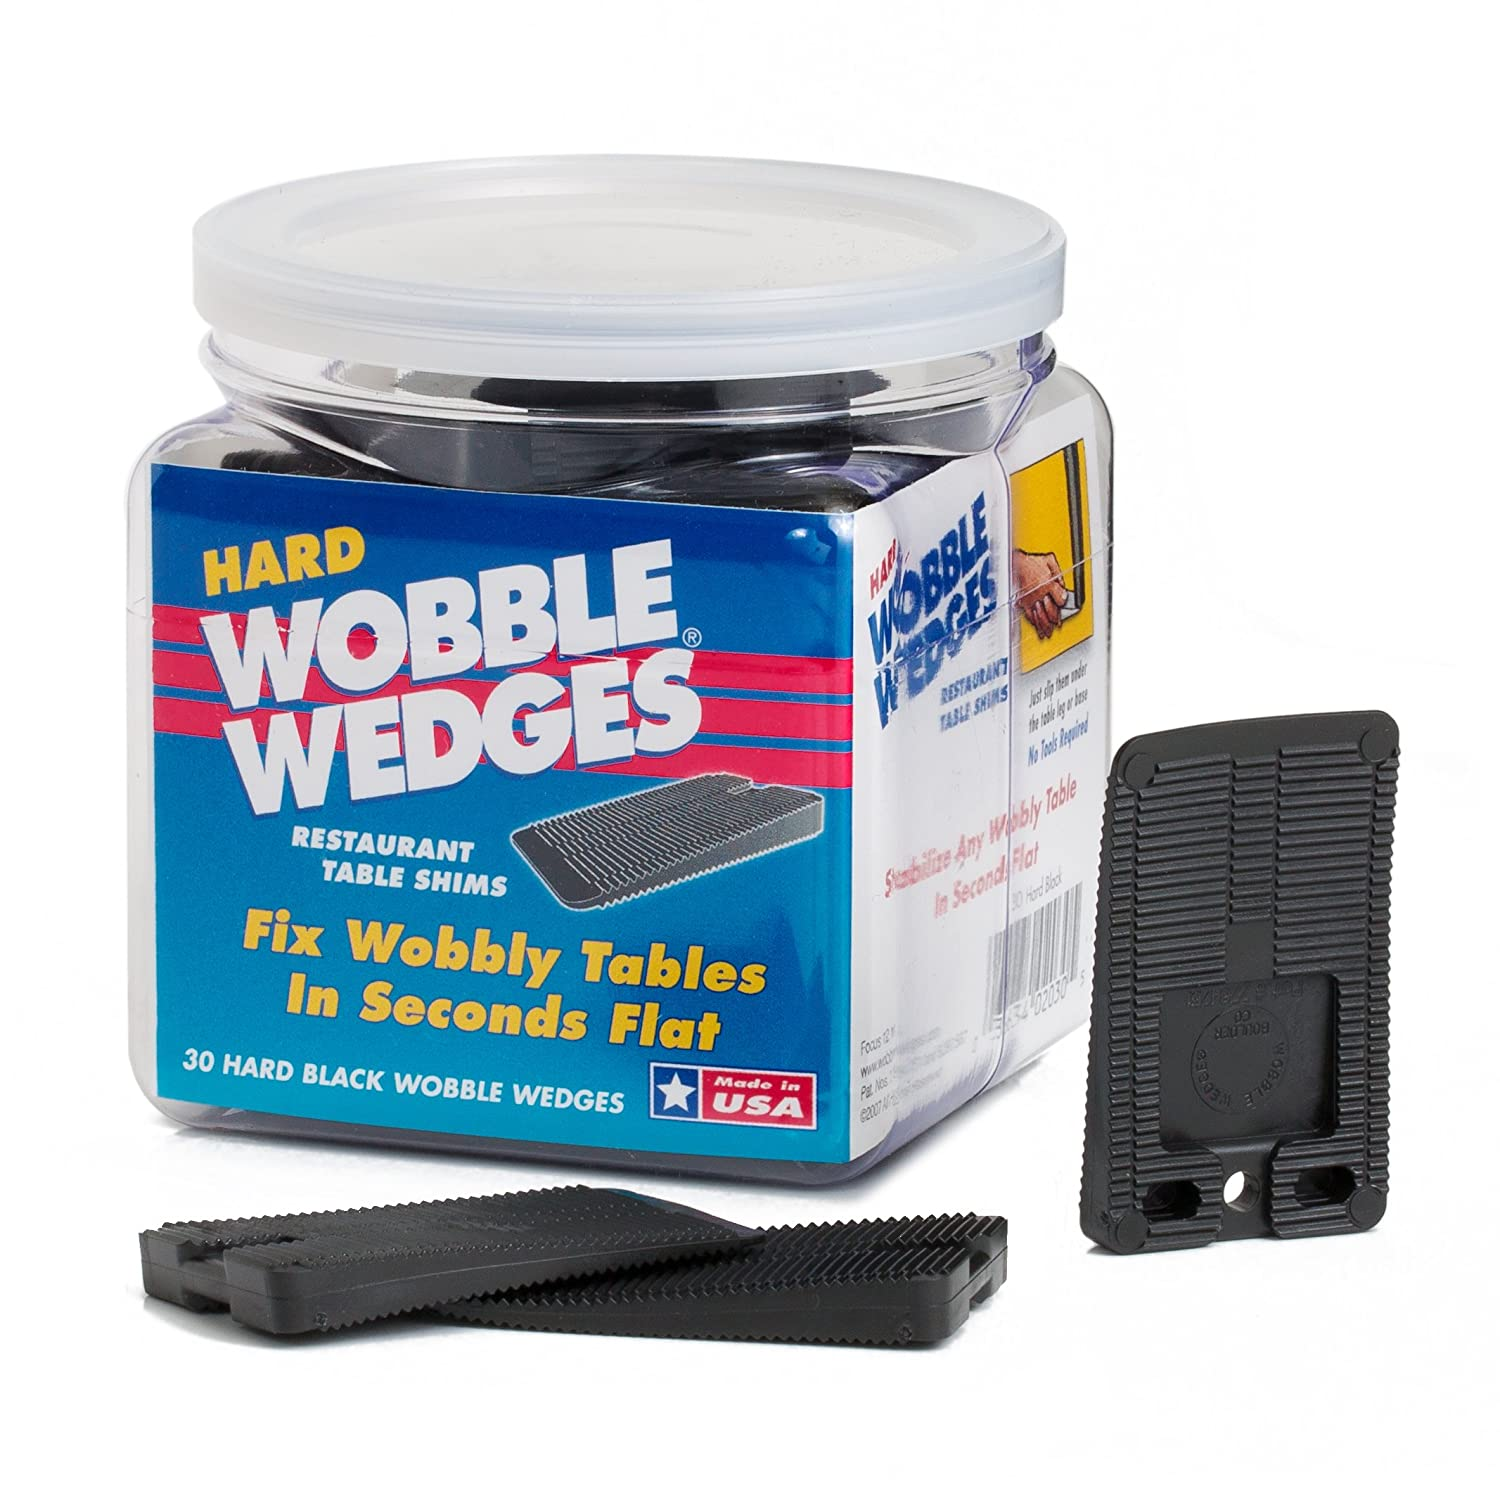 Wobble Wedges Stackable Multi-Purpose Installation Leveling Shims – Hard Black Plastic – 30 pack – Level Furniture, Restaurant Tables, Appliances, Plumbing Fixtures, Tables, Fountains, and more